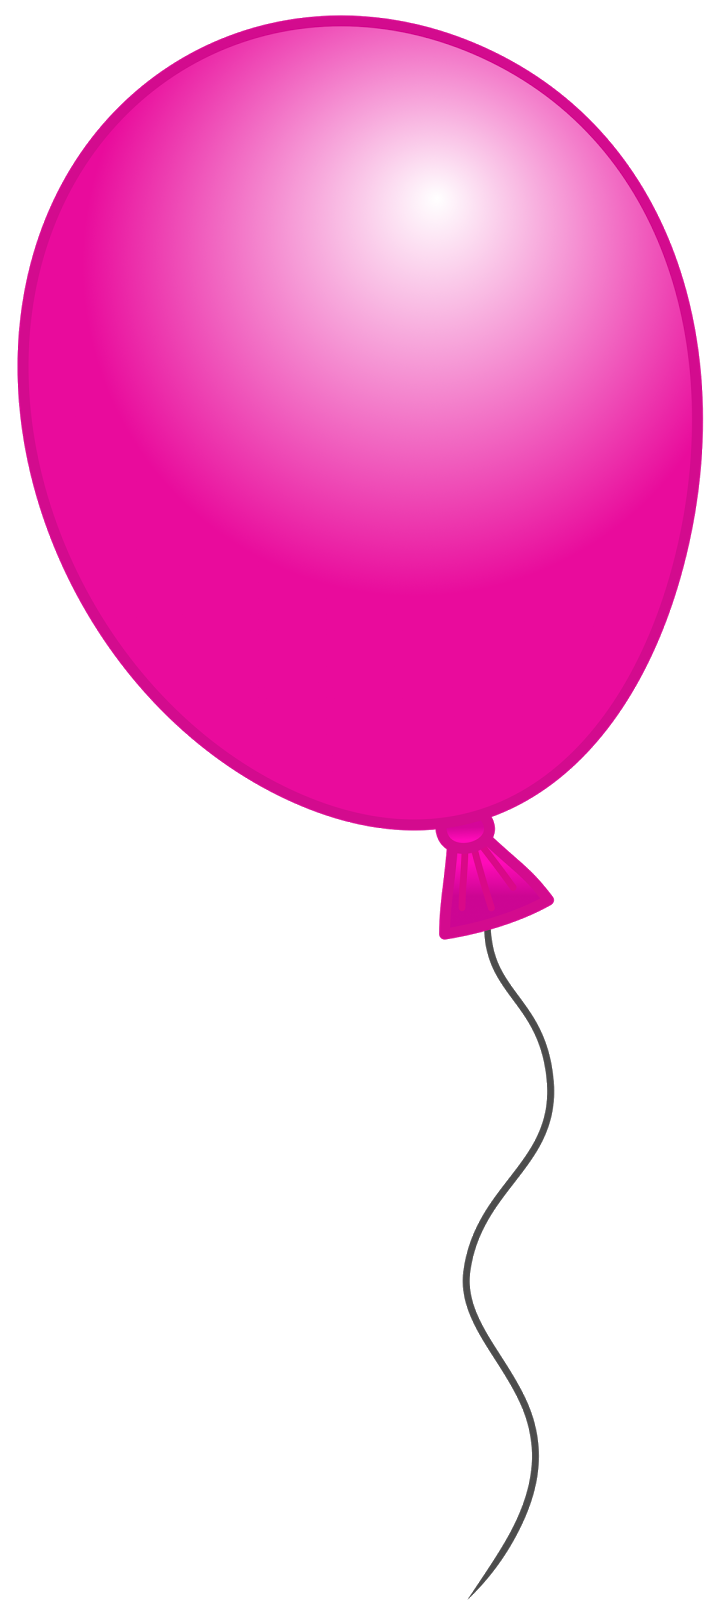 birthday balloons template - Romeo.landinez.co